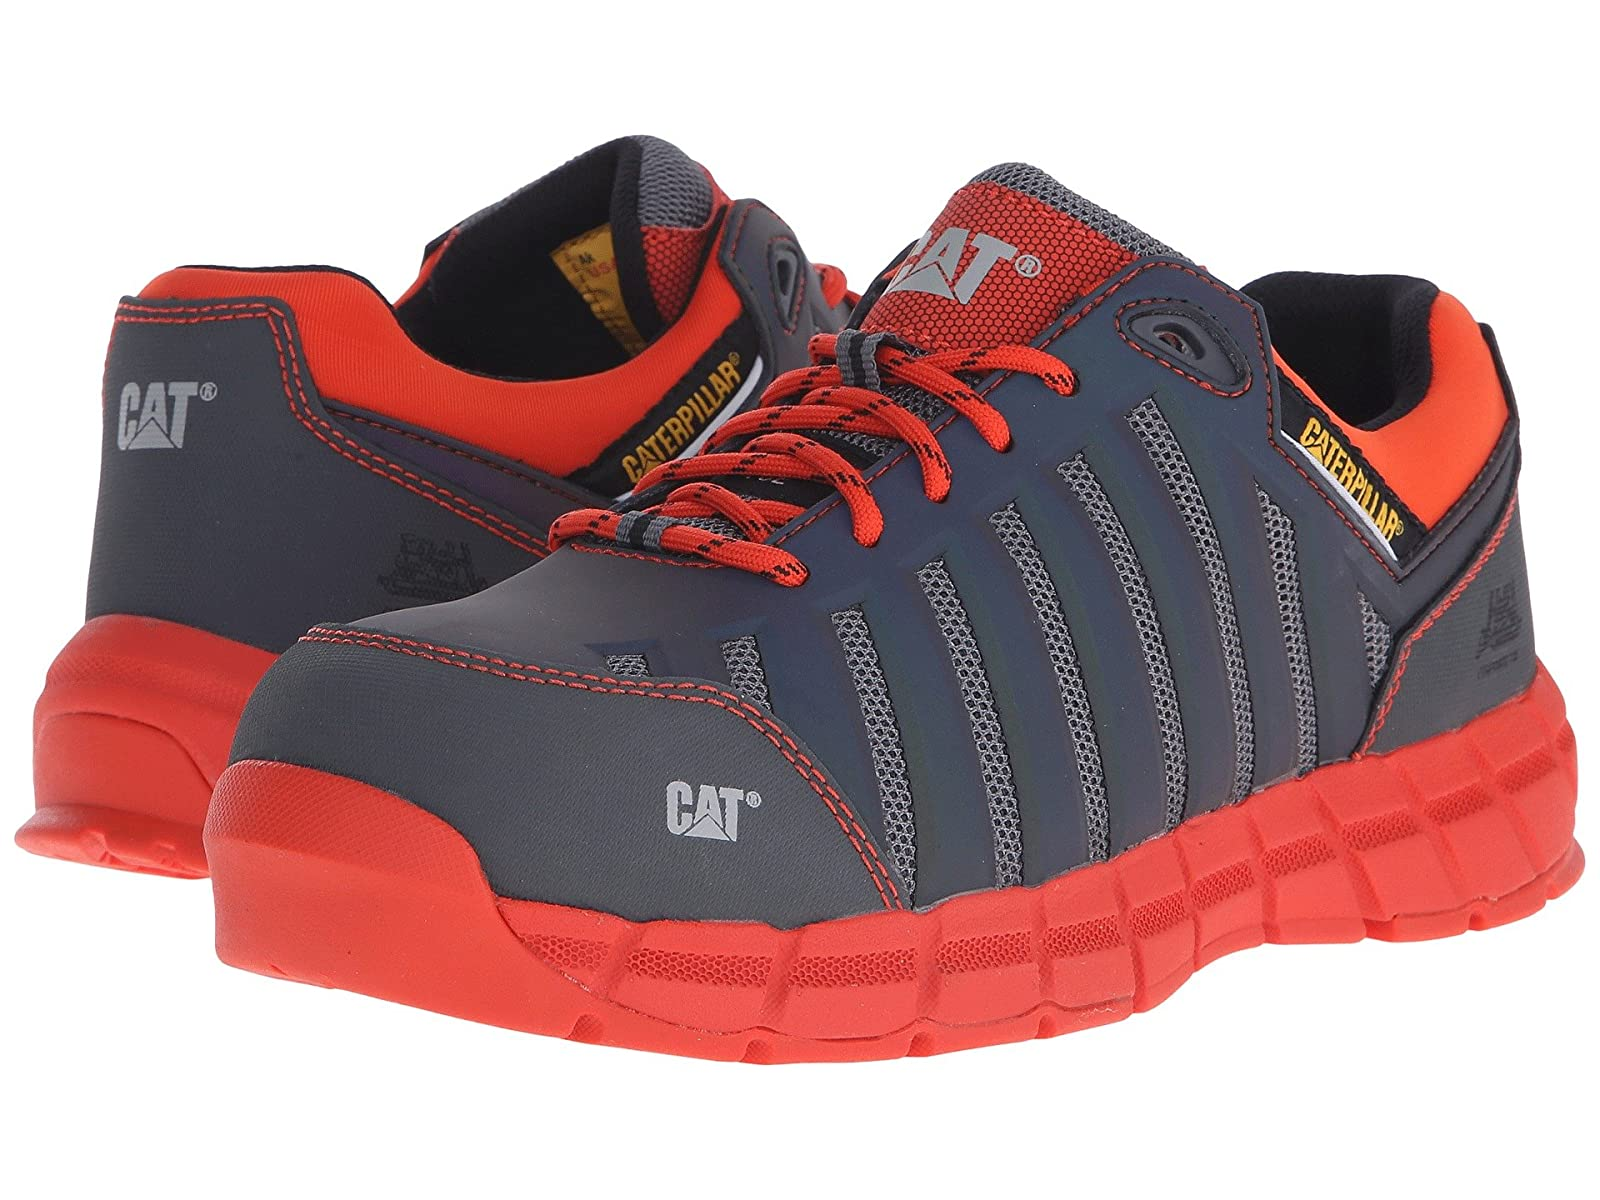 Caterpillar Chromatic Composite ToeAtmospheric grades have affordable shoes